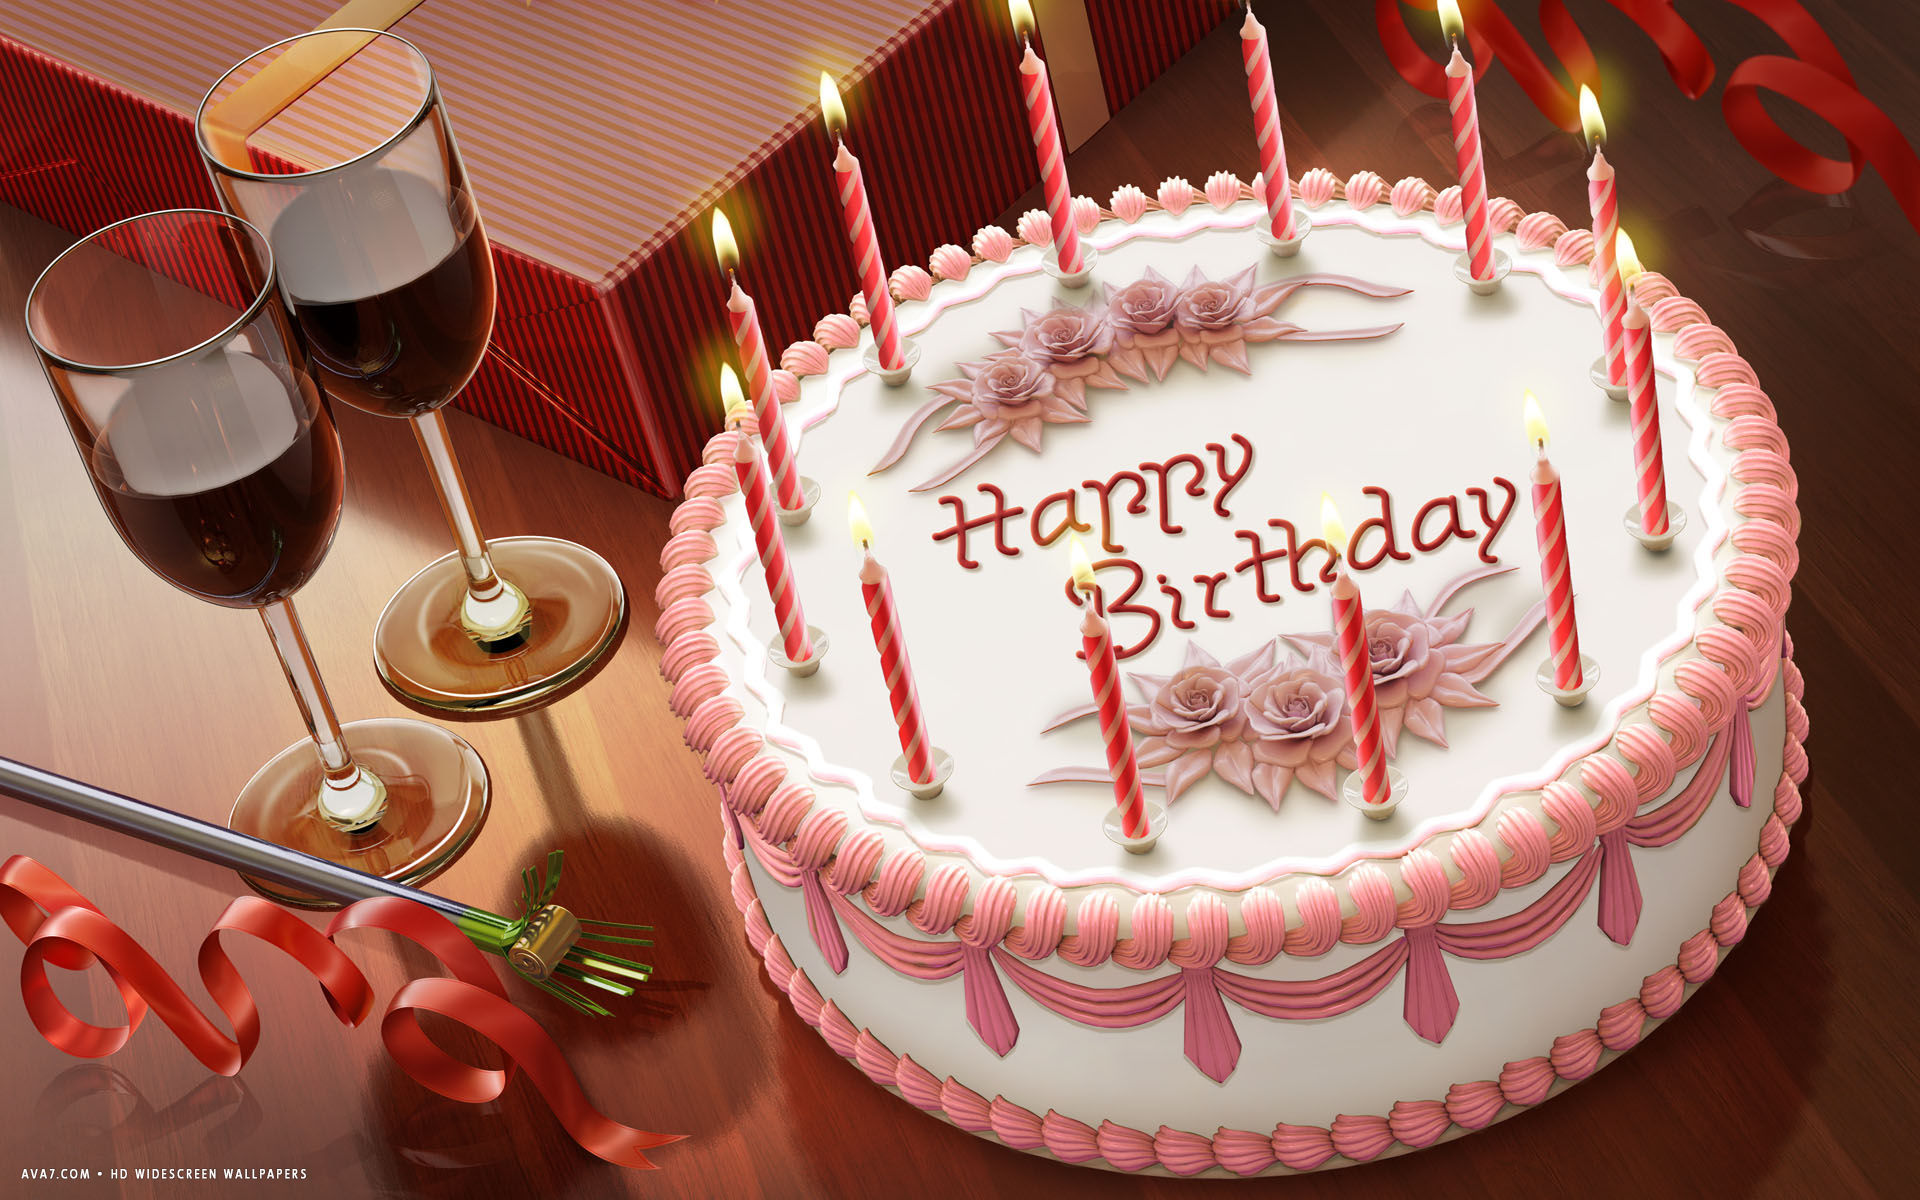 Happy Birthday Cake Candles Wine Romantic Hd Widescreen Wallpaper